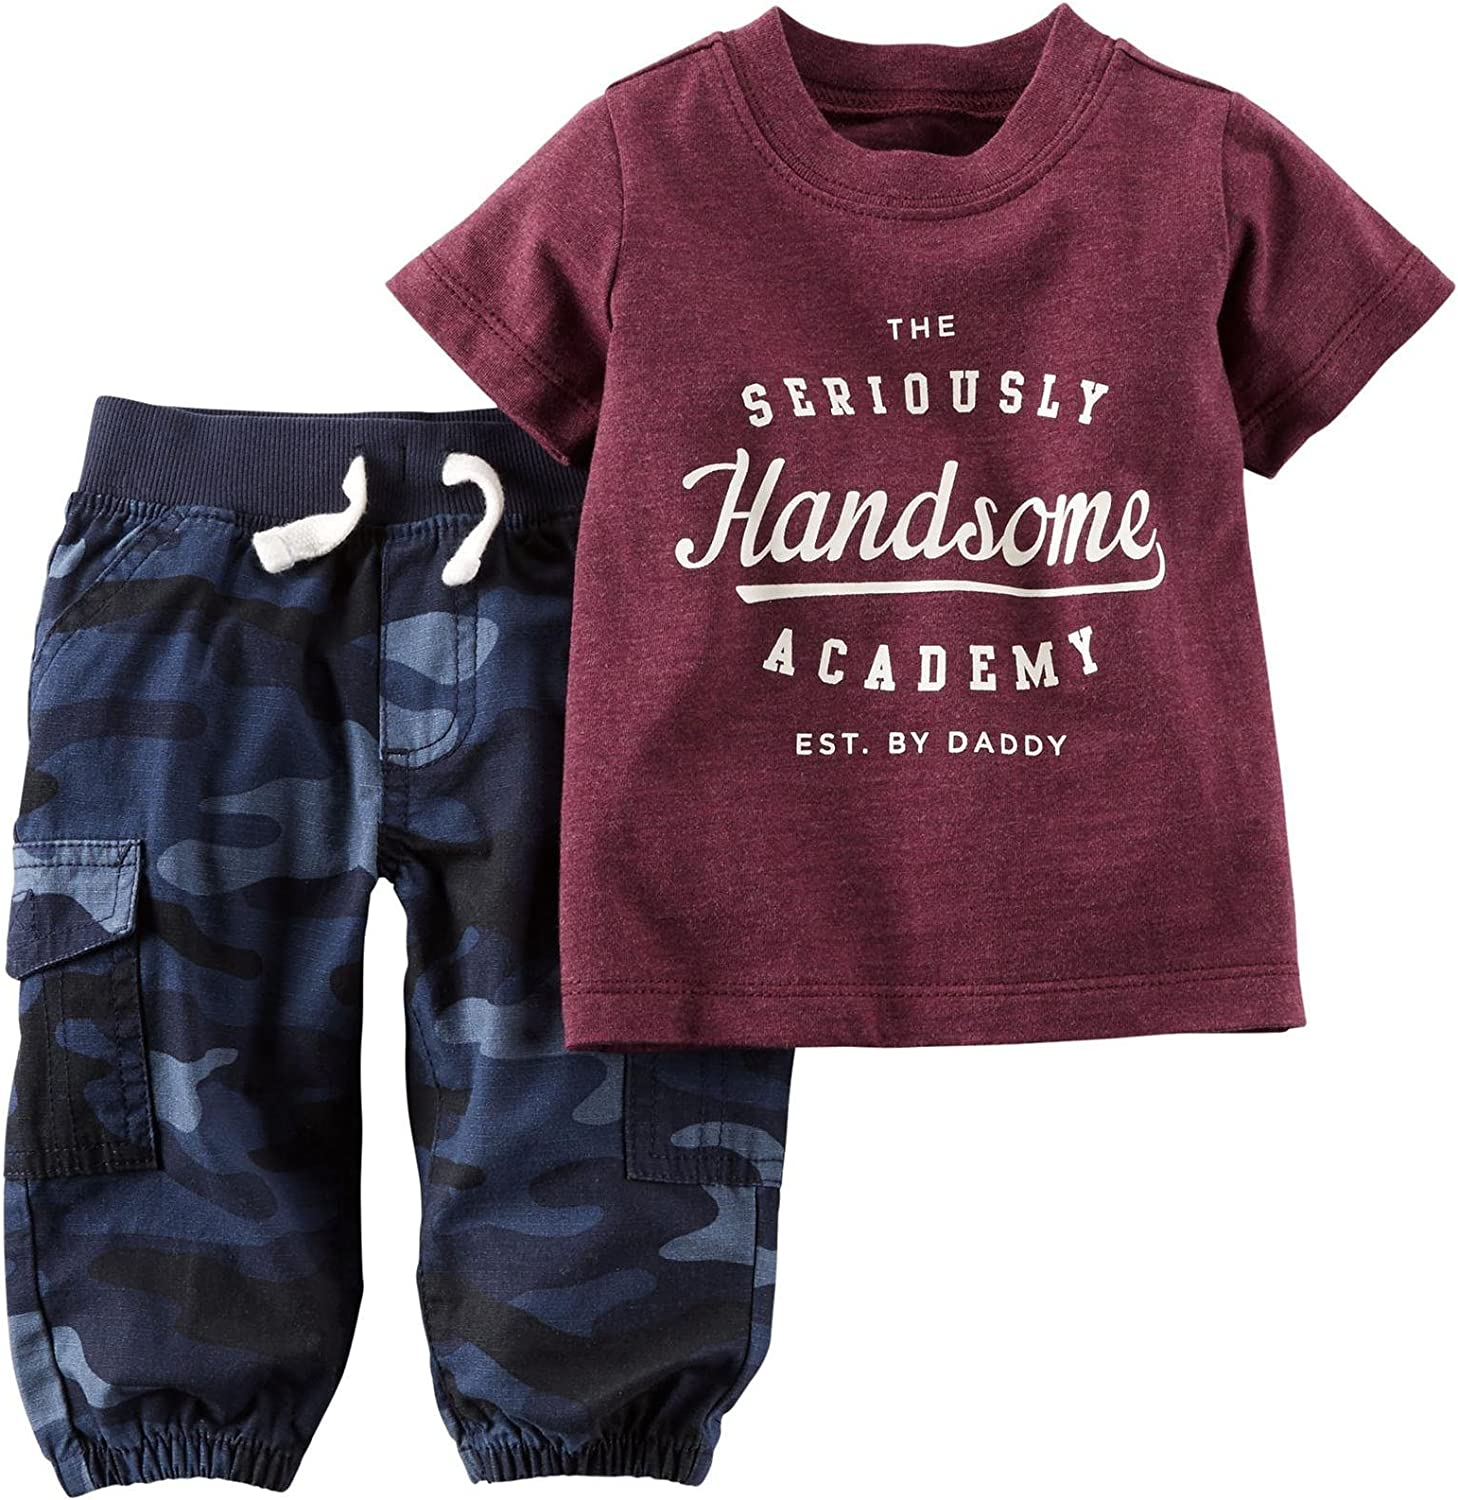 Carter's Baby Boys' 2 Piece Graphic Tee Set (Baby) - Handsome - 3 Months